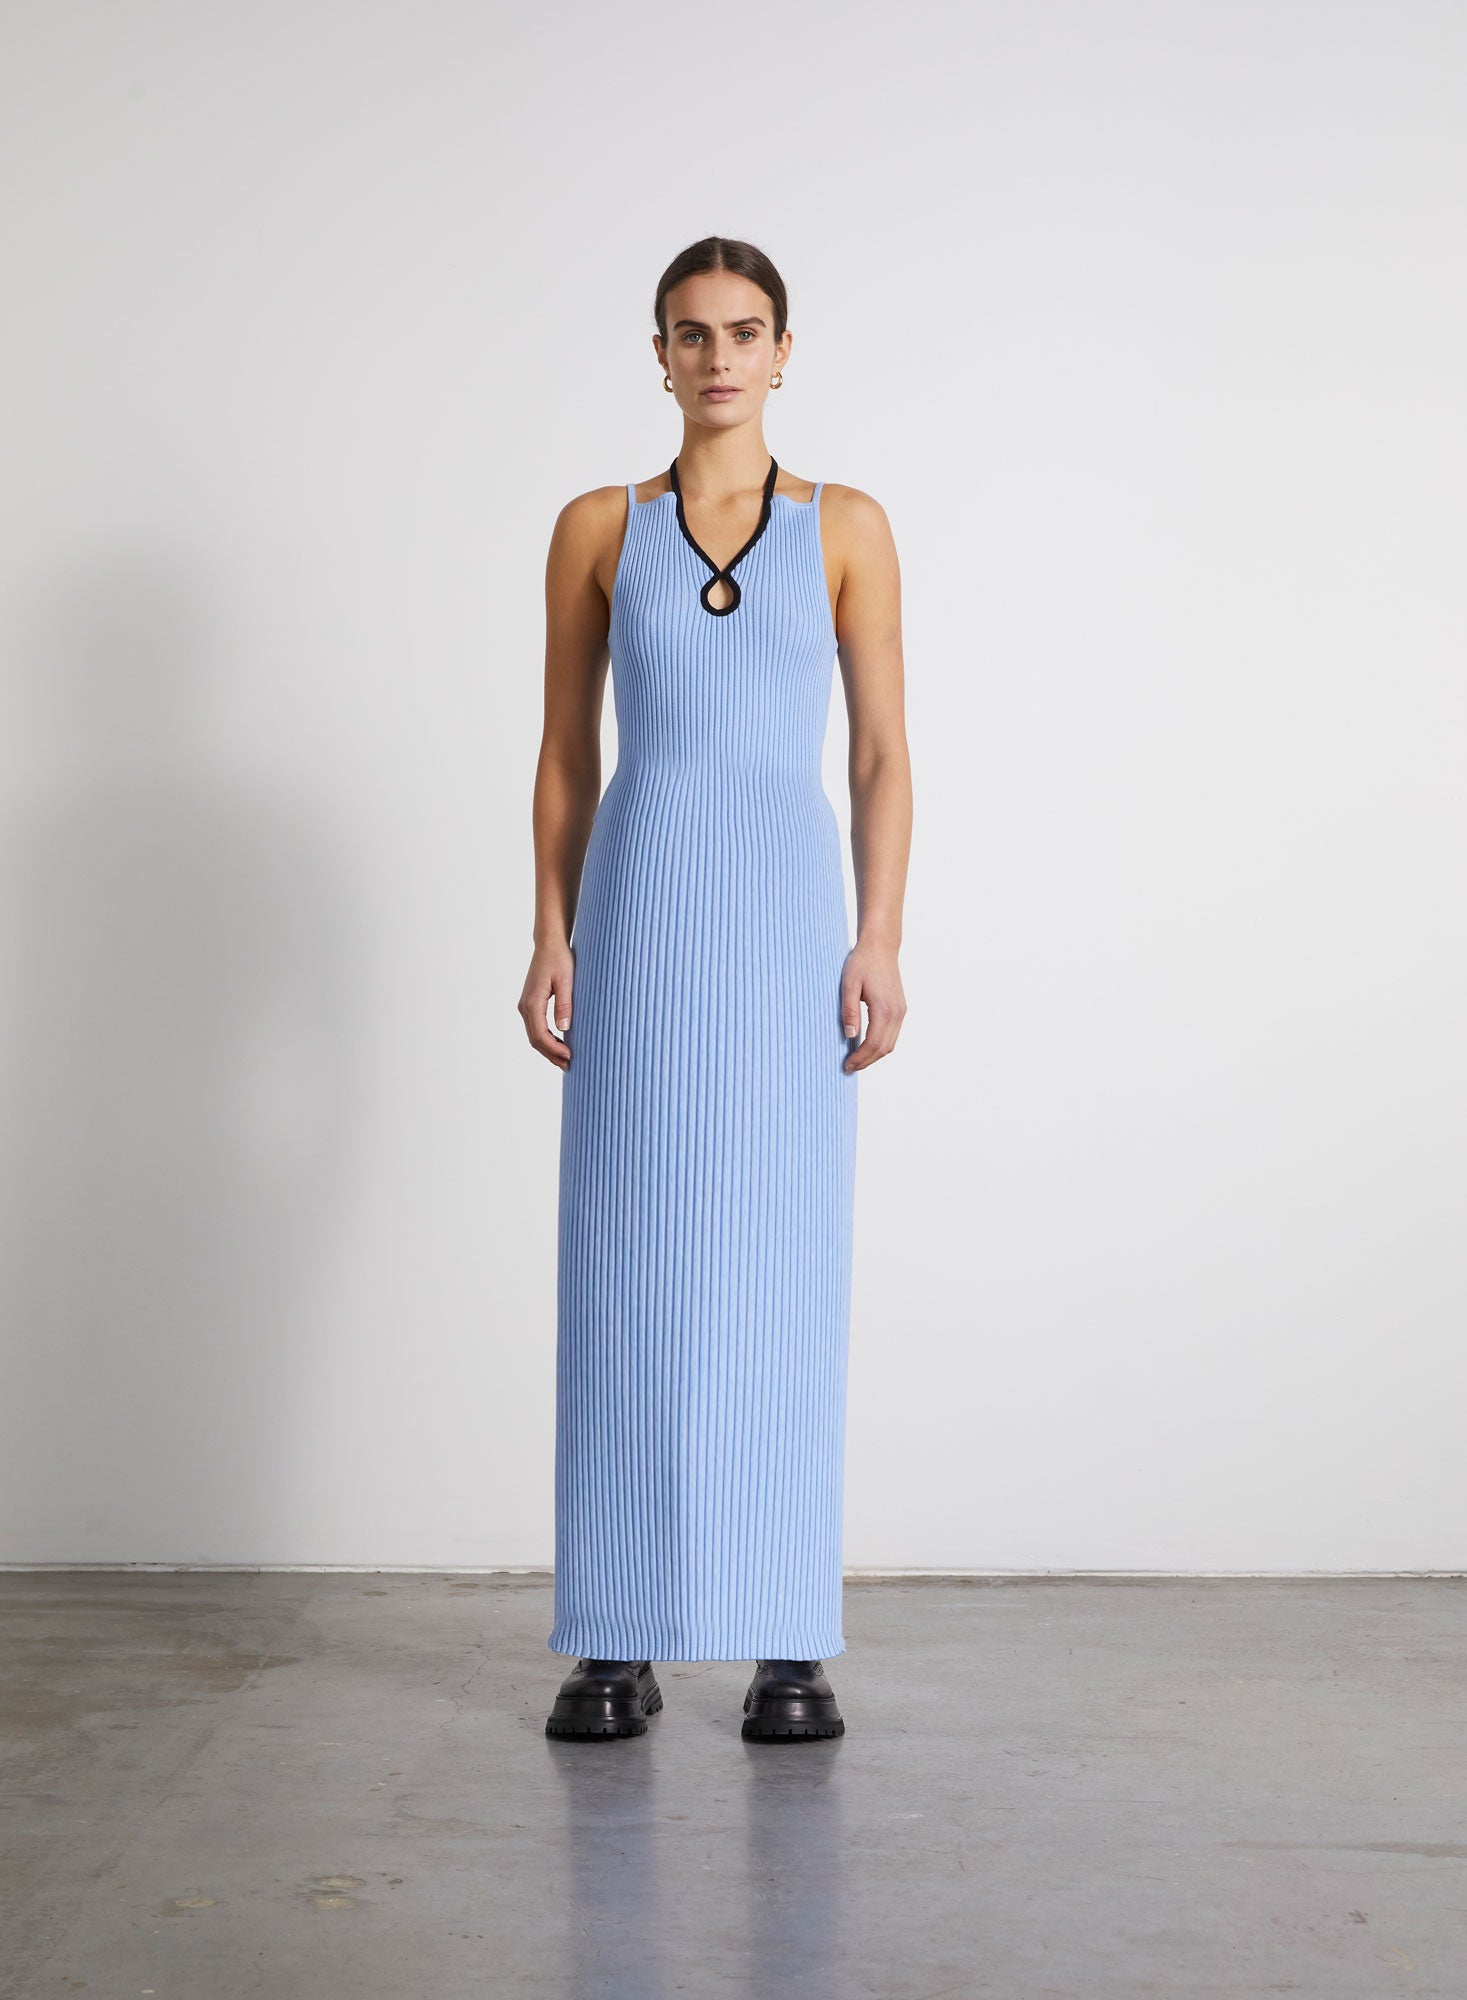 Loop Ribbed Knit Dress - Cornflower